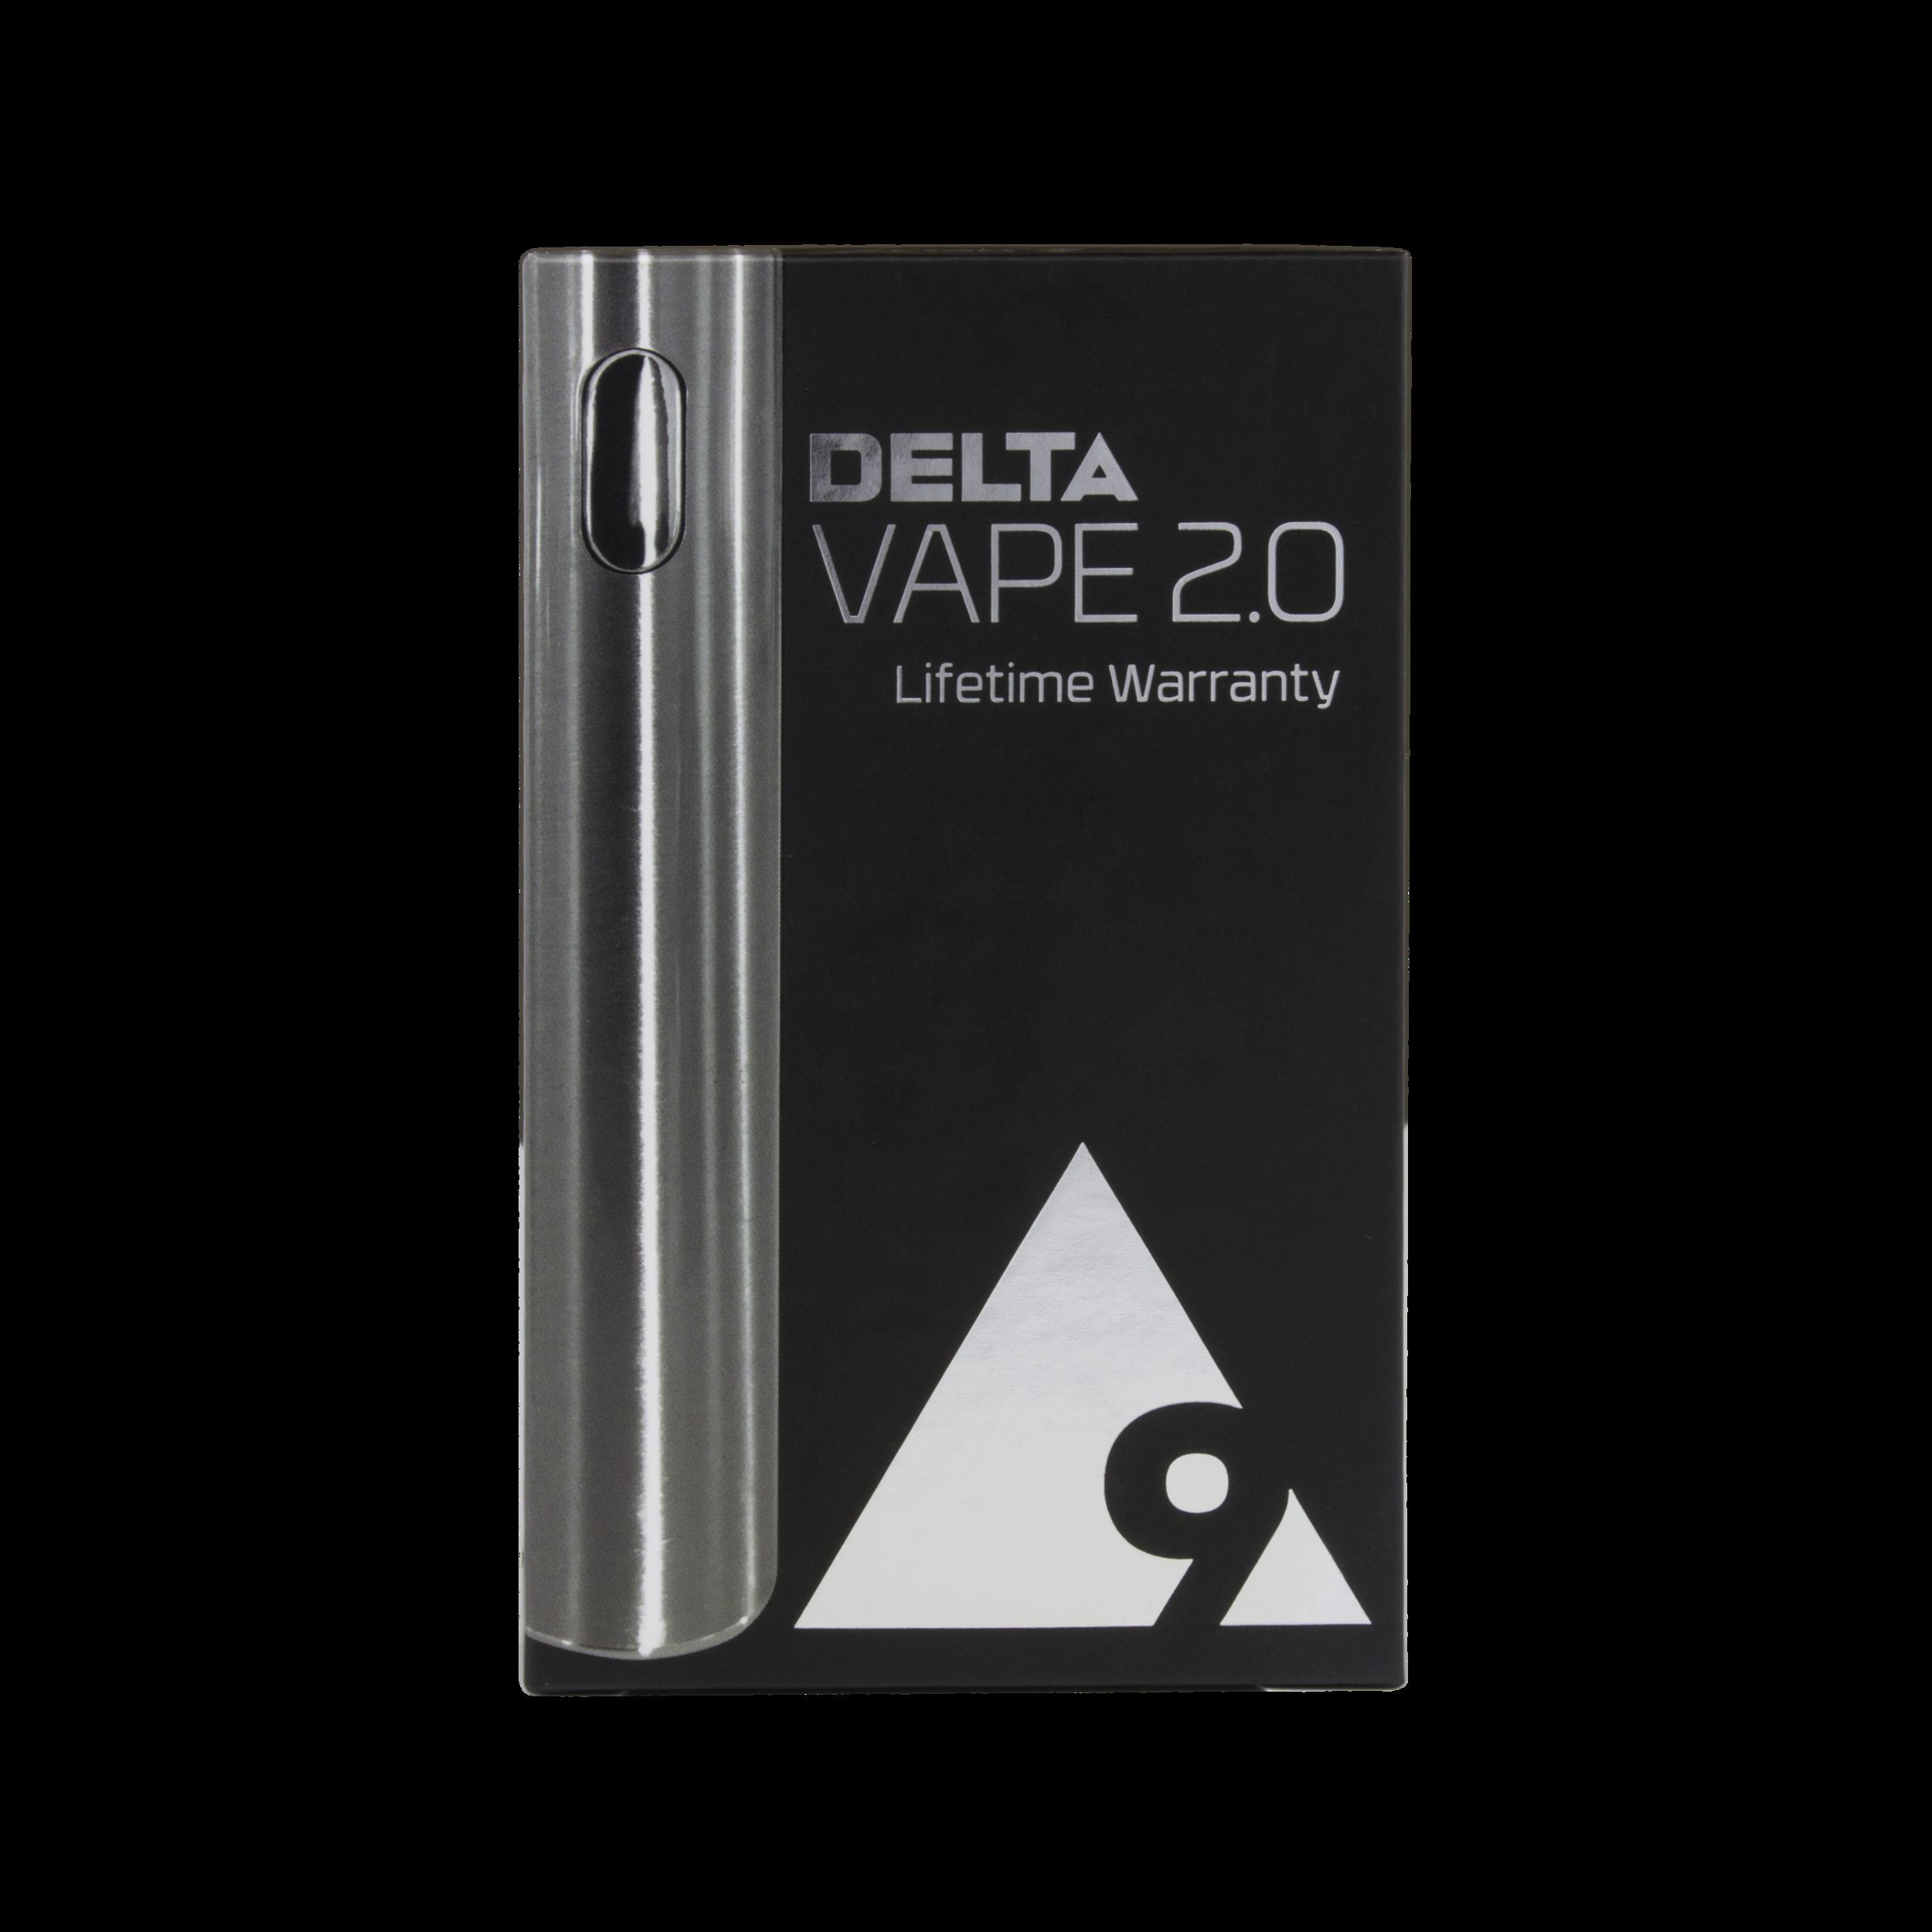 Delta 9 Vape Battery and Charger